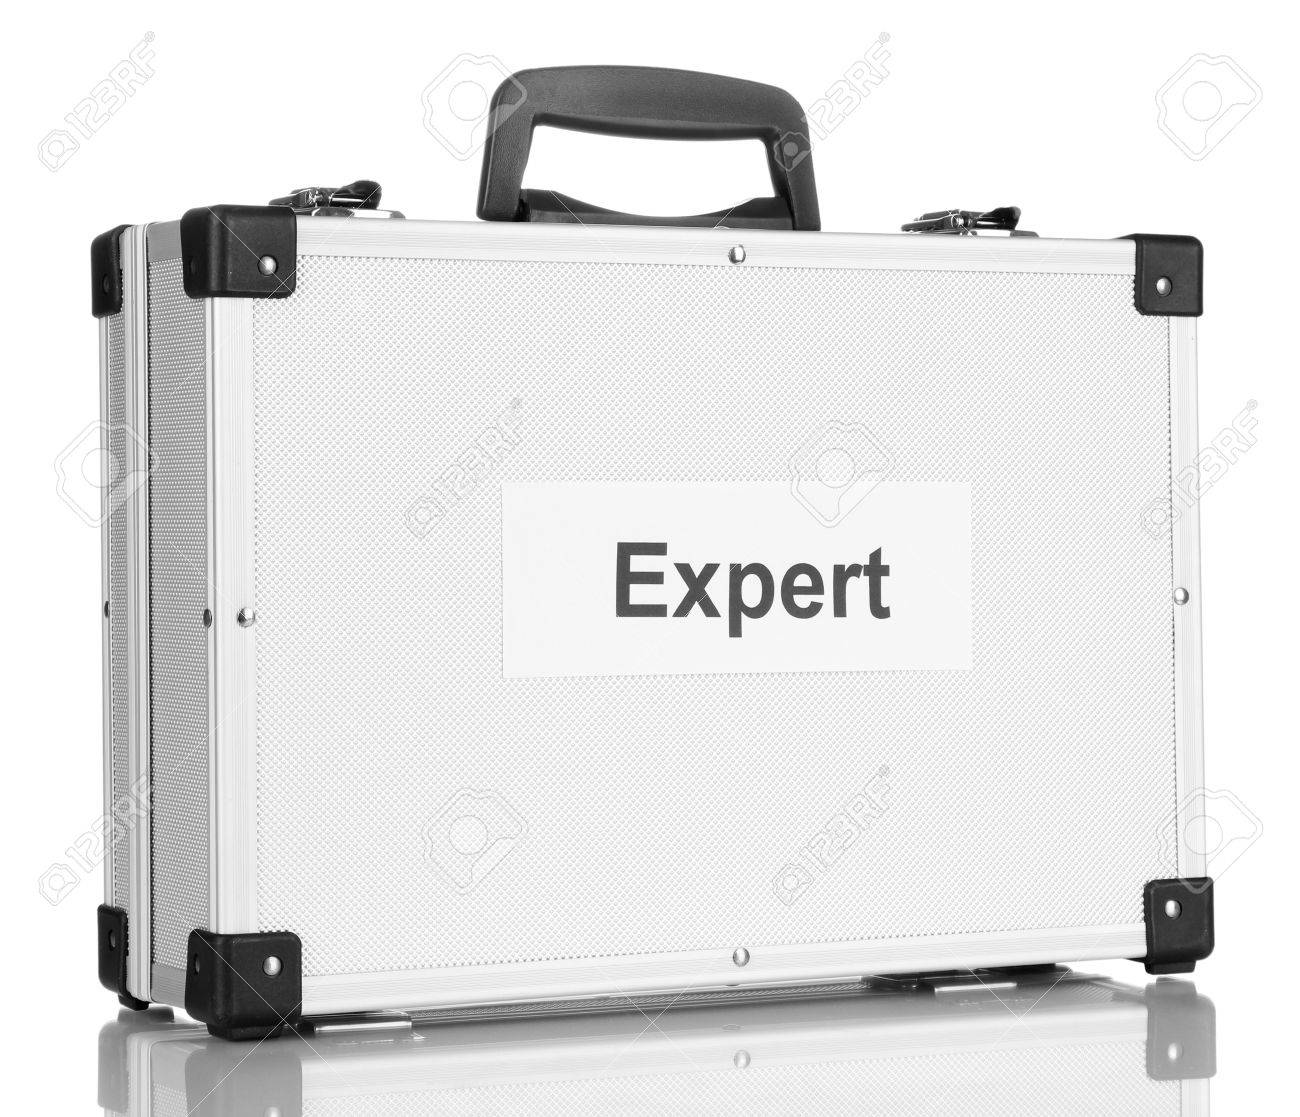 Silvery diplomat (suitcase) isolated on white Stock Photo - 16948713